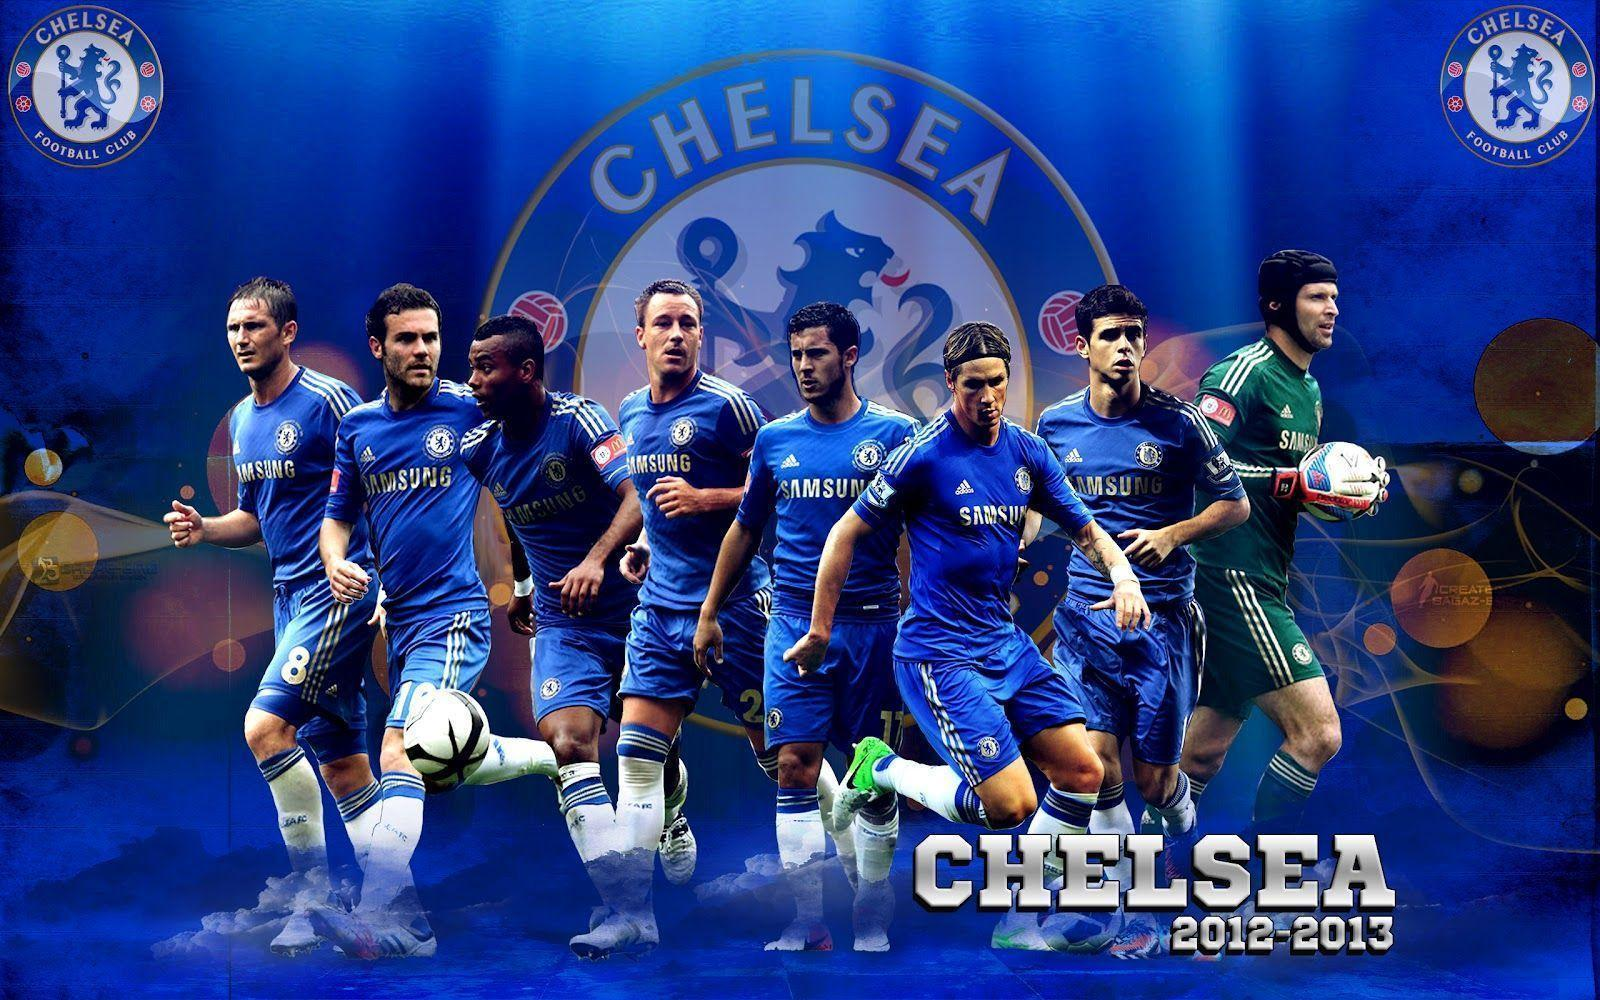 Football wallpapers chelsea fc wallpaper cave chelsea fc soccer fresh hd wallpaper 2013 all football players voltagebd Gallery